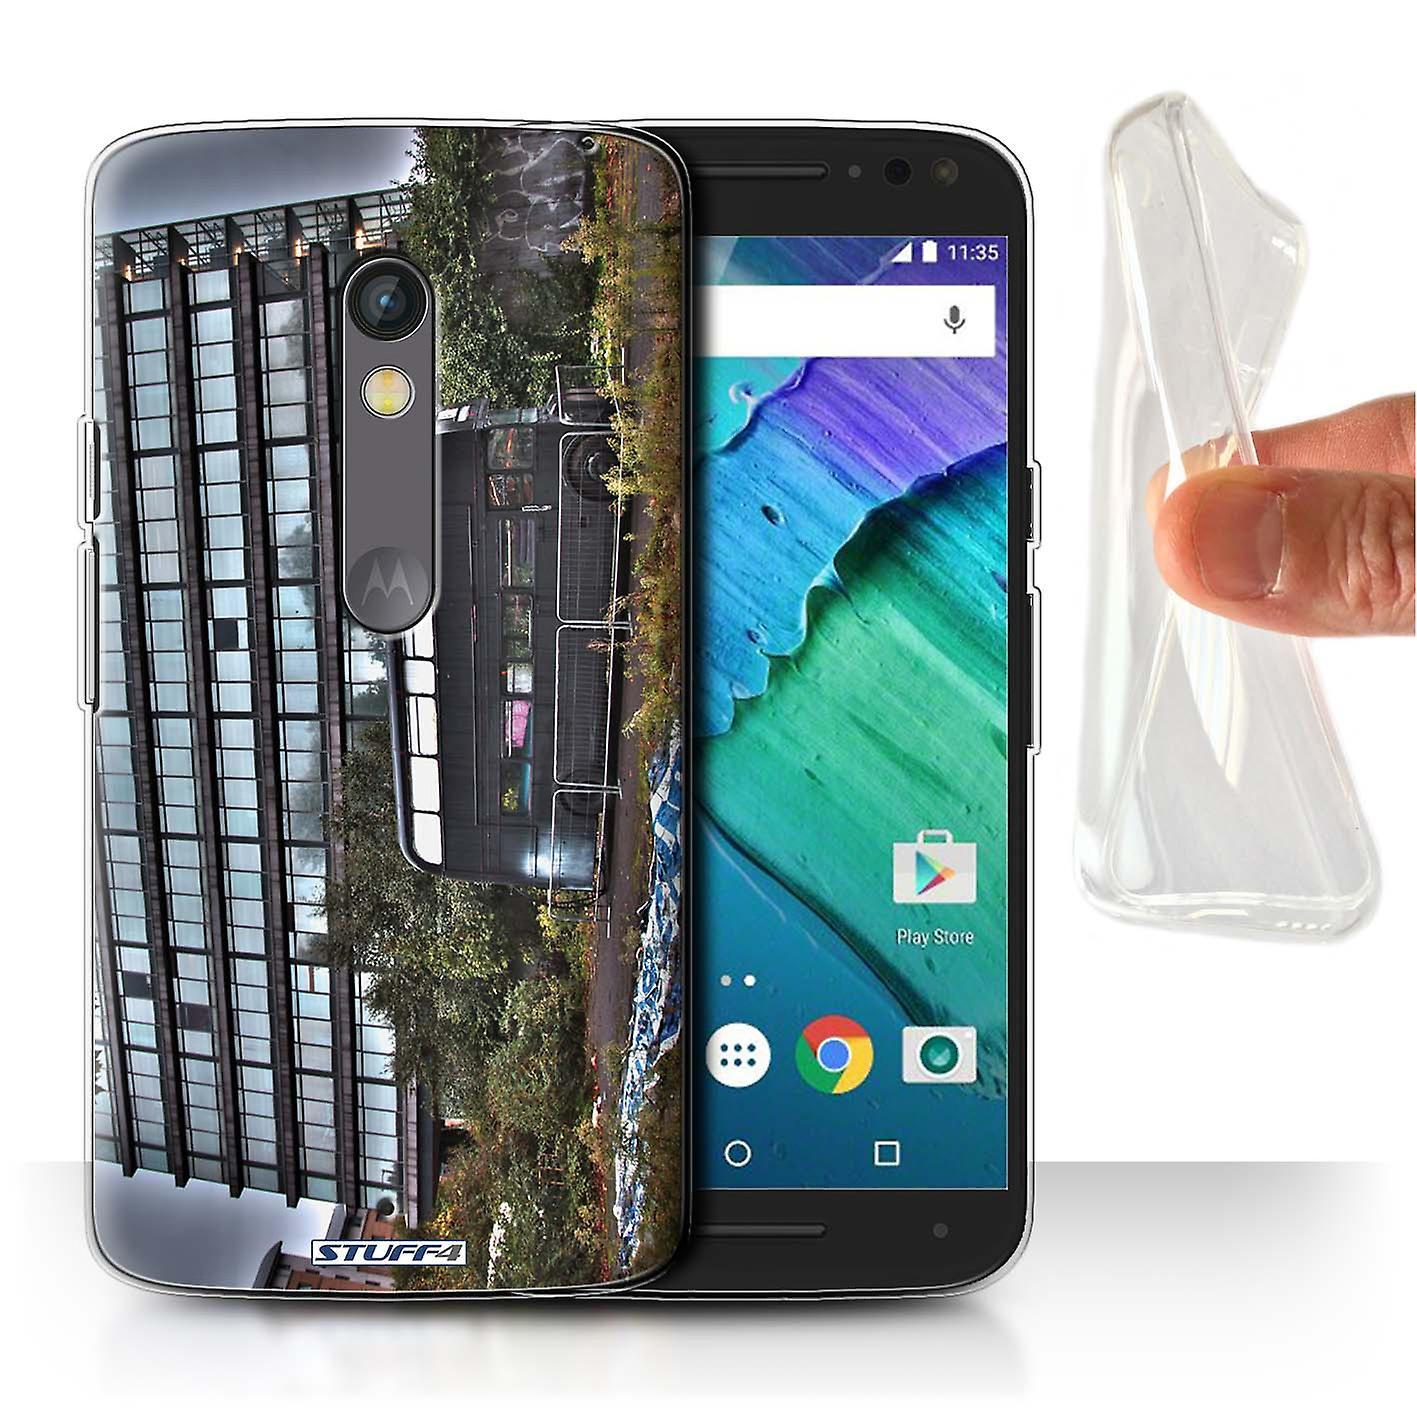 STUFF4 Gel/TPU Case/Cover for Motorola Moto X Play 2015/Derelict Bus/London England